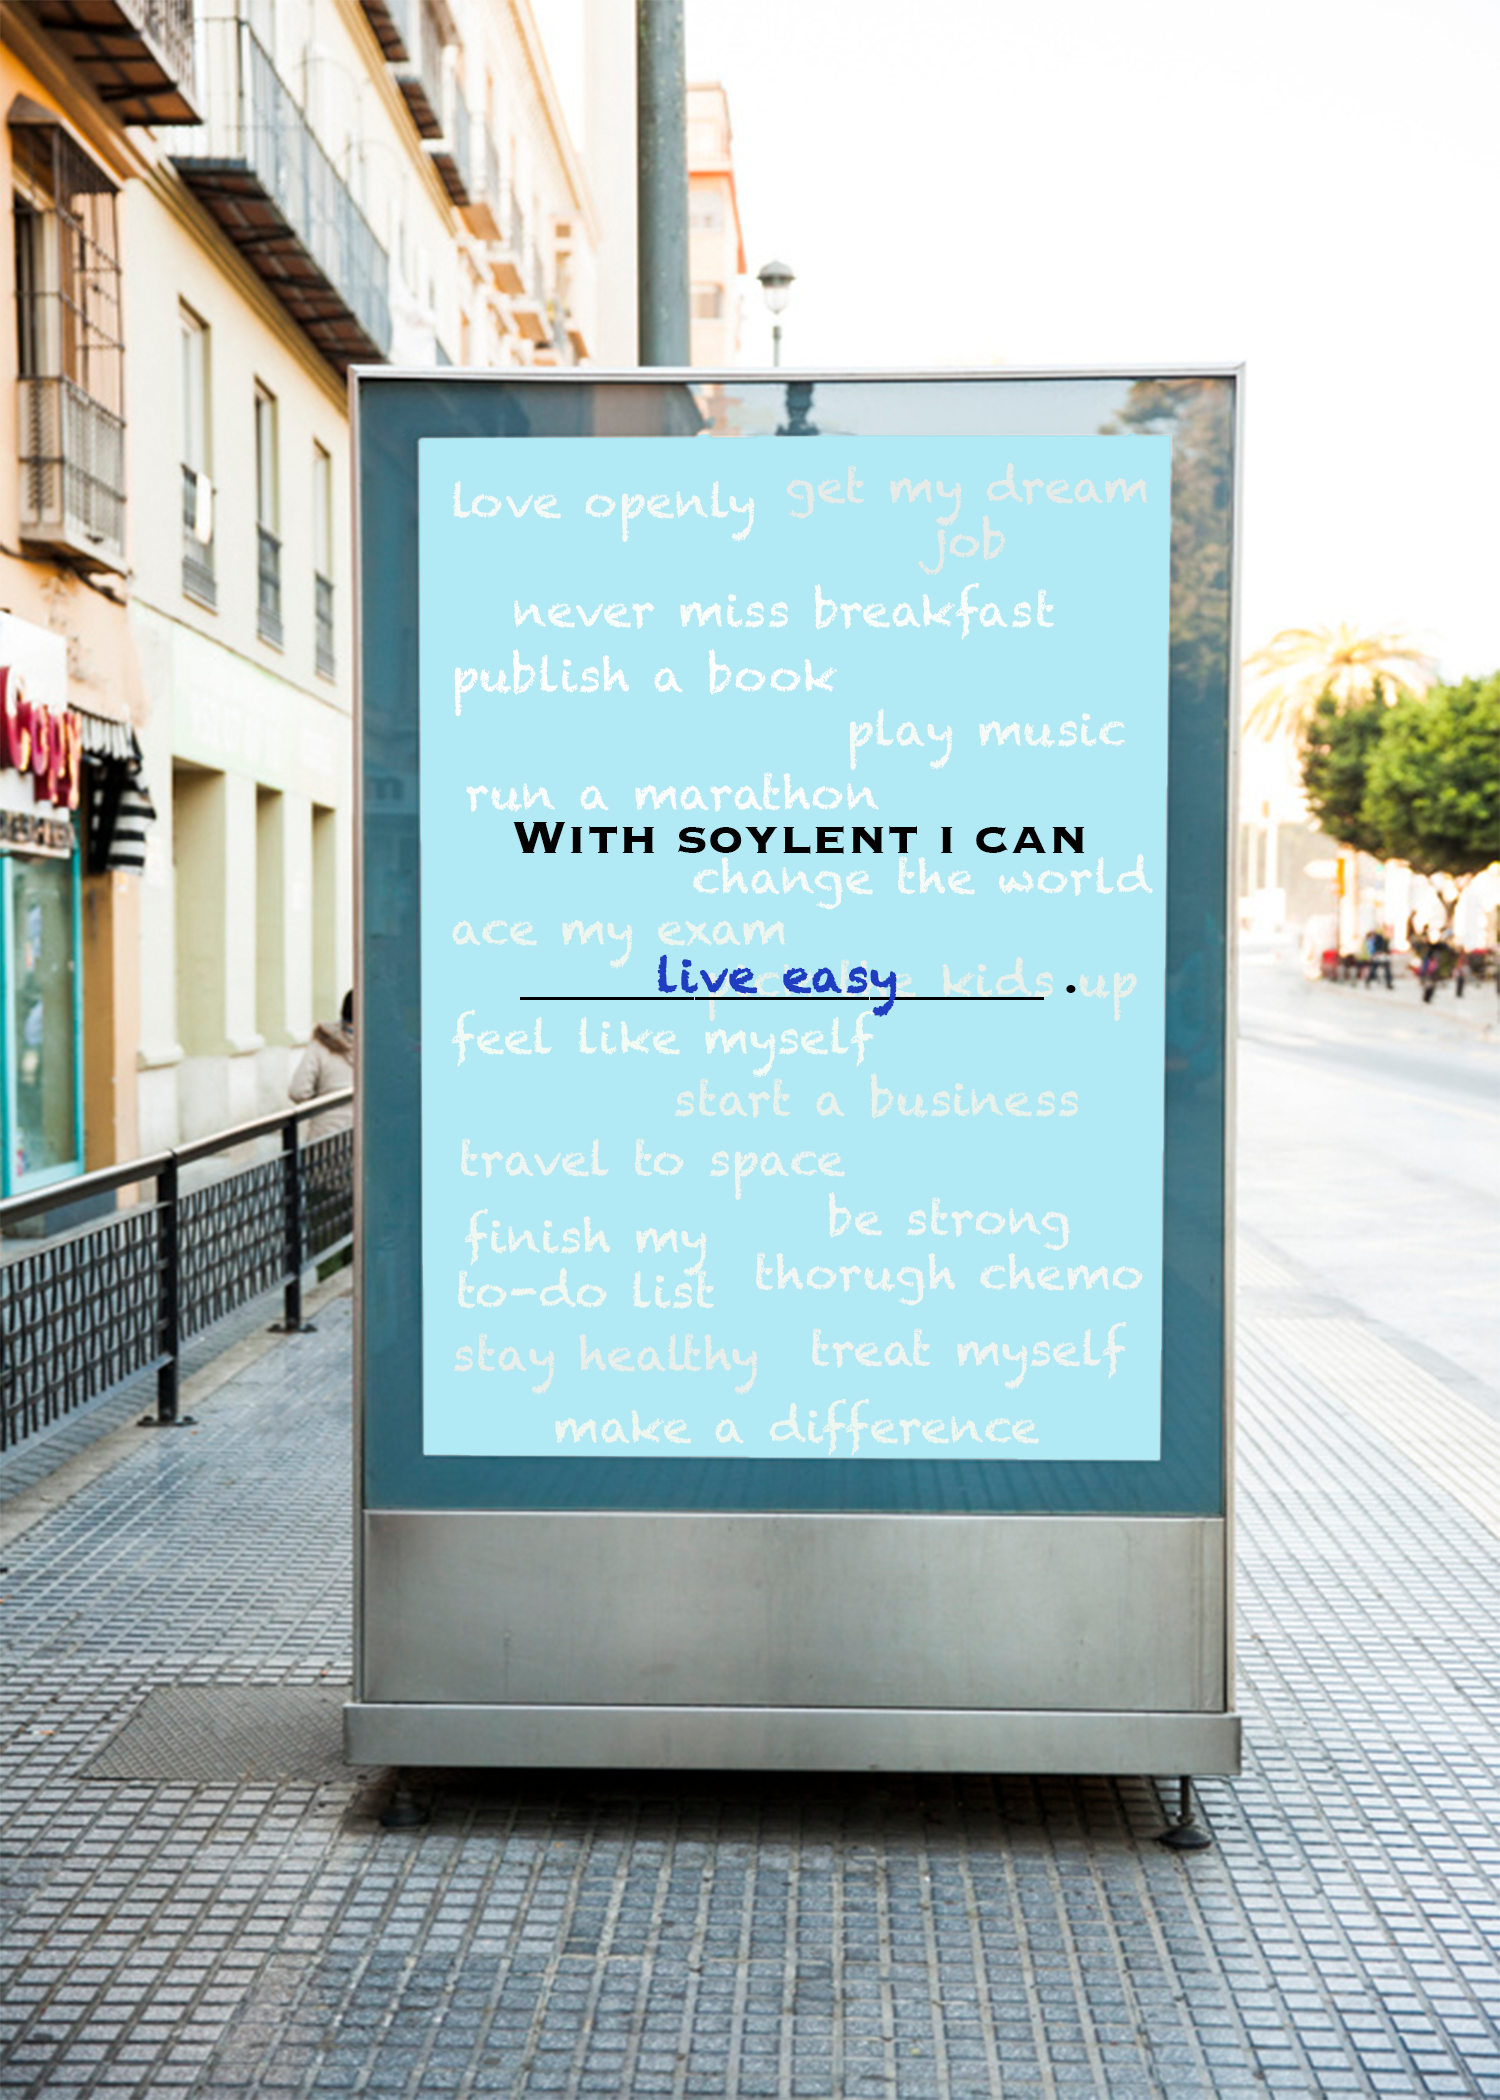 Screen two. As new people write, the old words will float in the background, sparking curiosity and inspiration for other pedestrians. It is a quick and interactive way to engage new consumers to see what they can do with soylent.